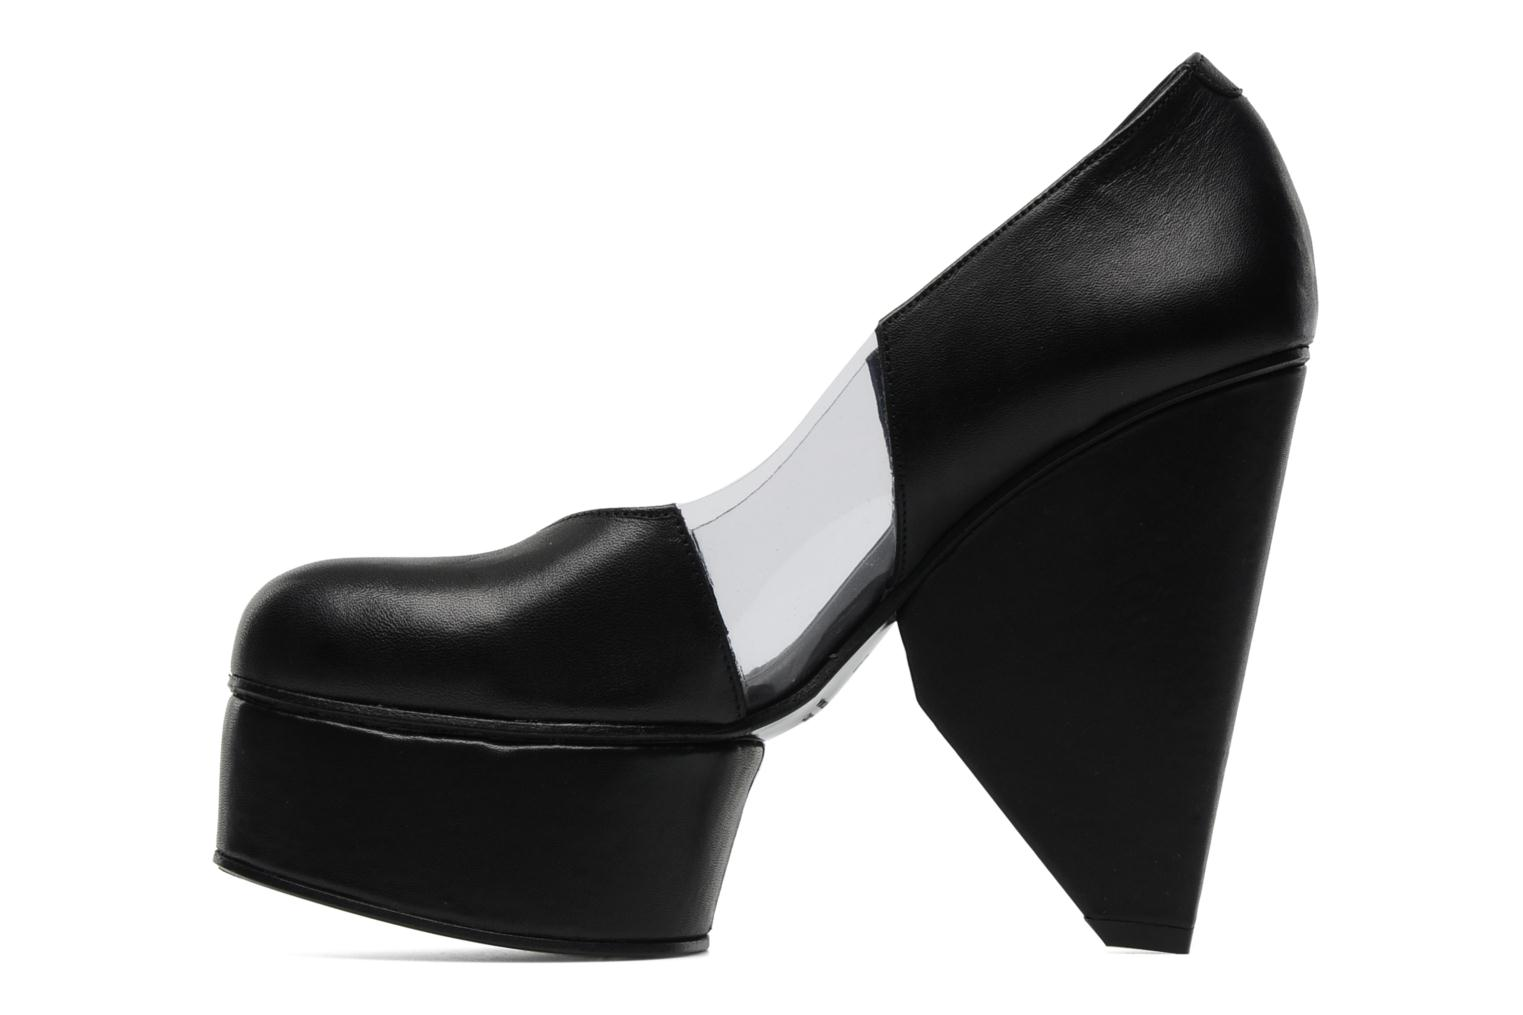 Louna Cut Pumps Black Transparent